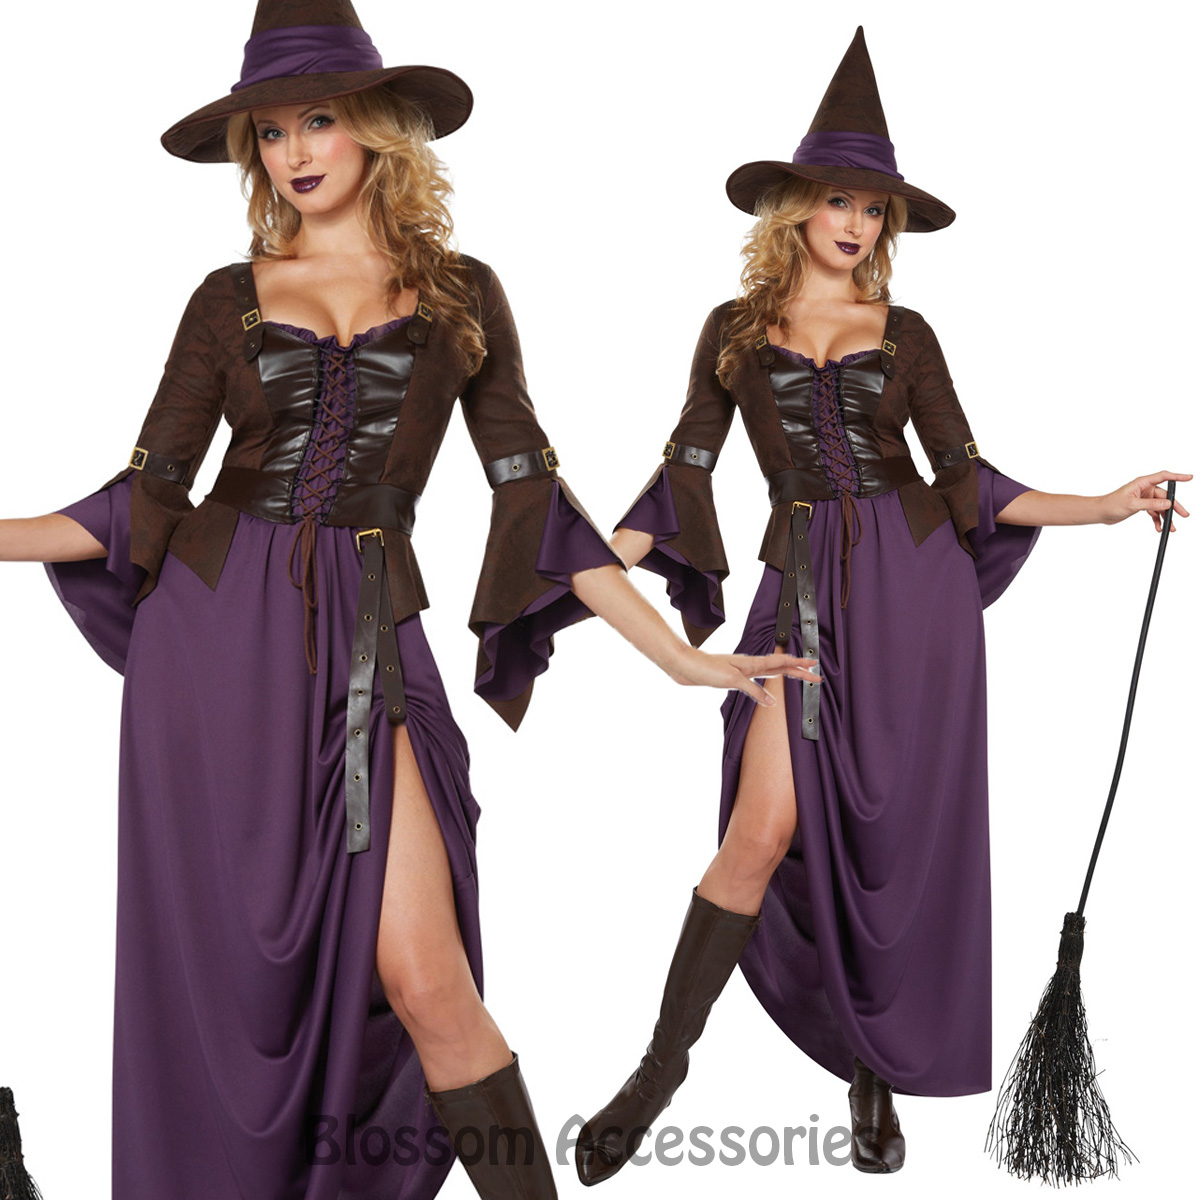 CL706-Salem-Witch-Halloween-Gothic-Dark-Fancy-Long-Dress-Up-Womens-Party-Costume